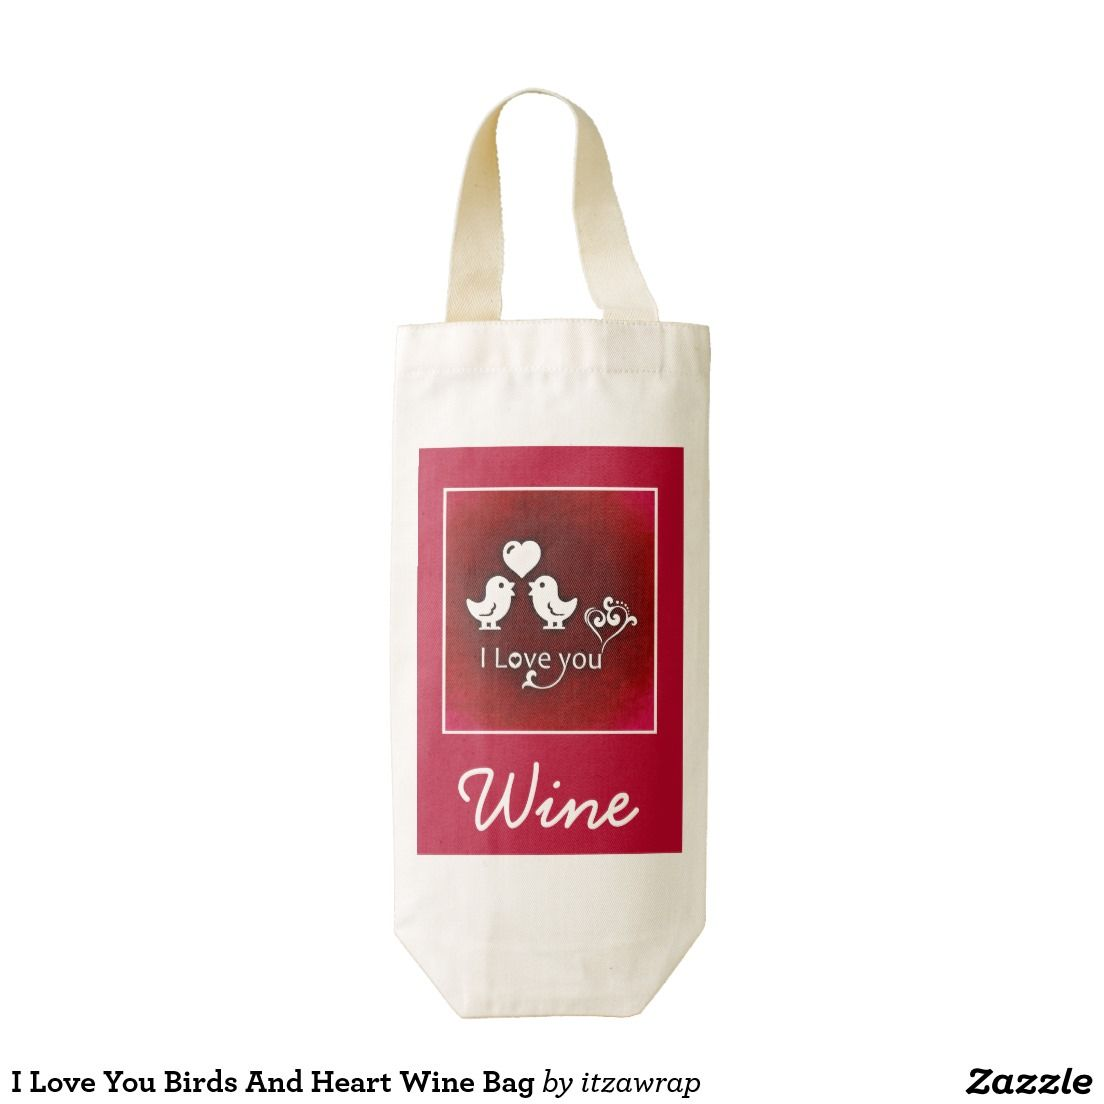 I Love You Birds And Heart Zazzle Heart Wine Bag Zazzle Com Wine Bag Wine Gift Boxes My Love